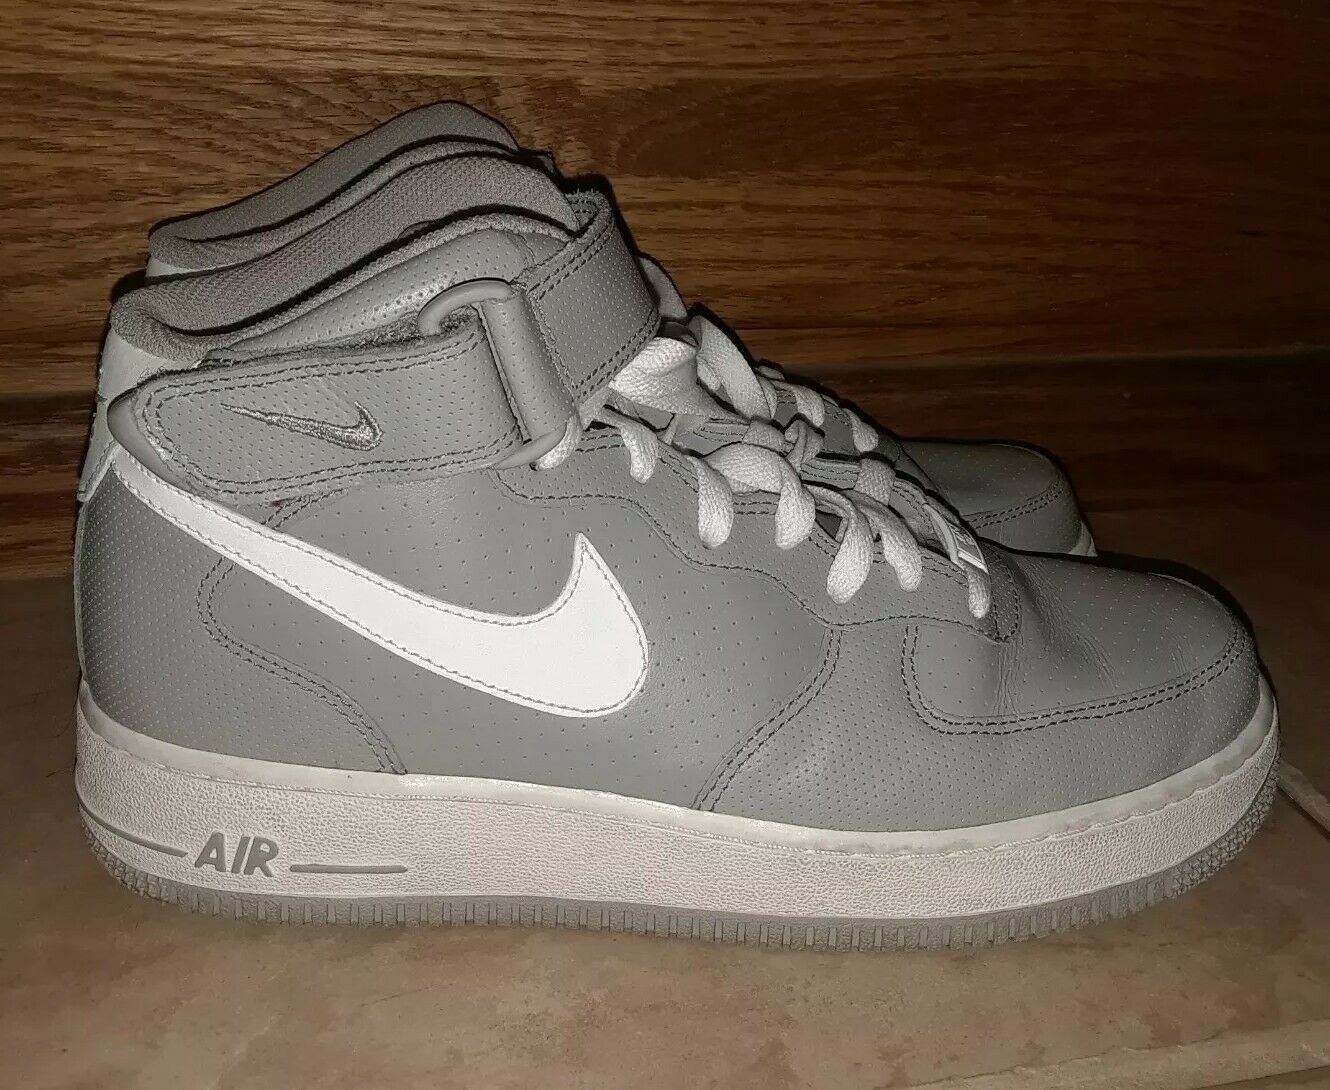 NIKE Air Force 1 Mid '11 315123 008 Perf Grey Sneakers shoes 7.5